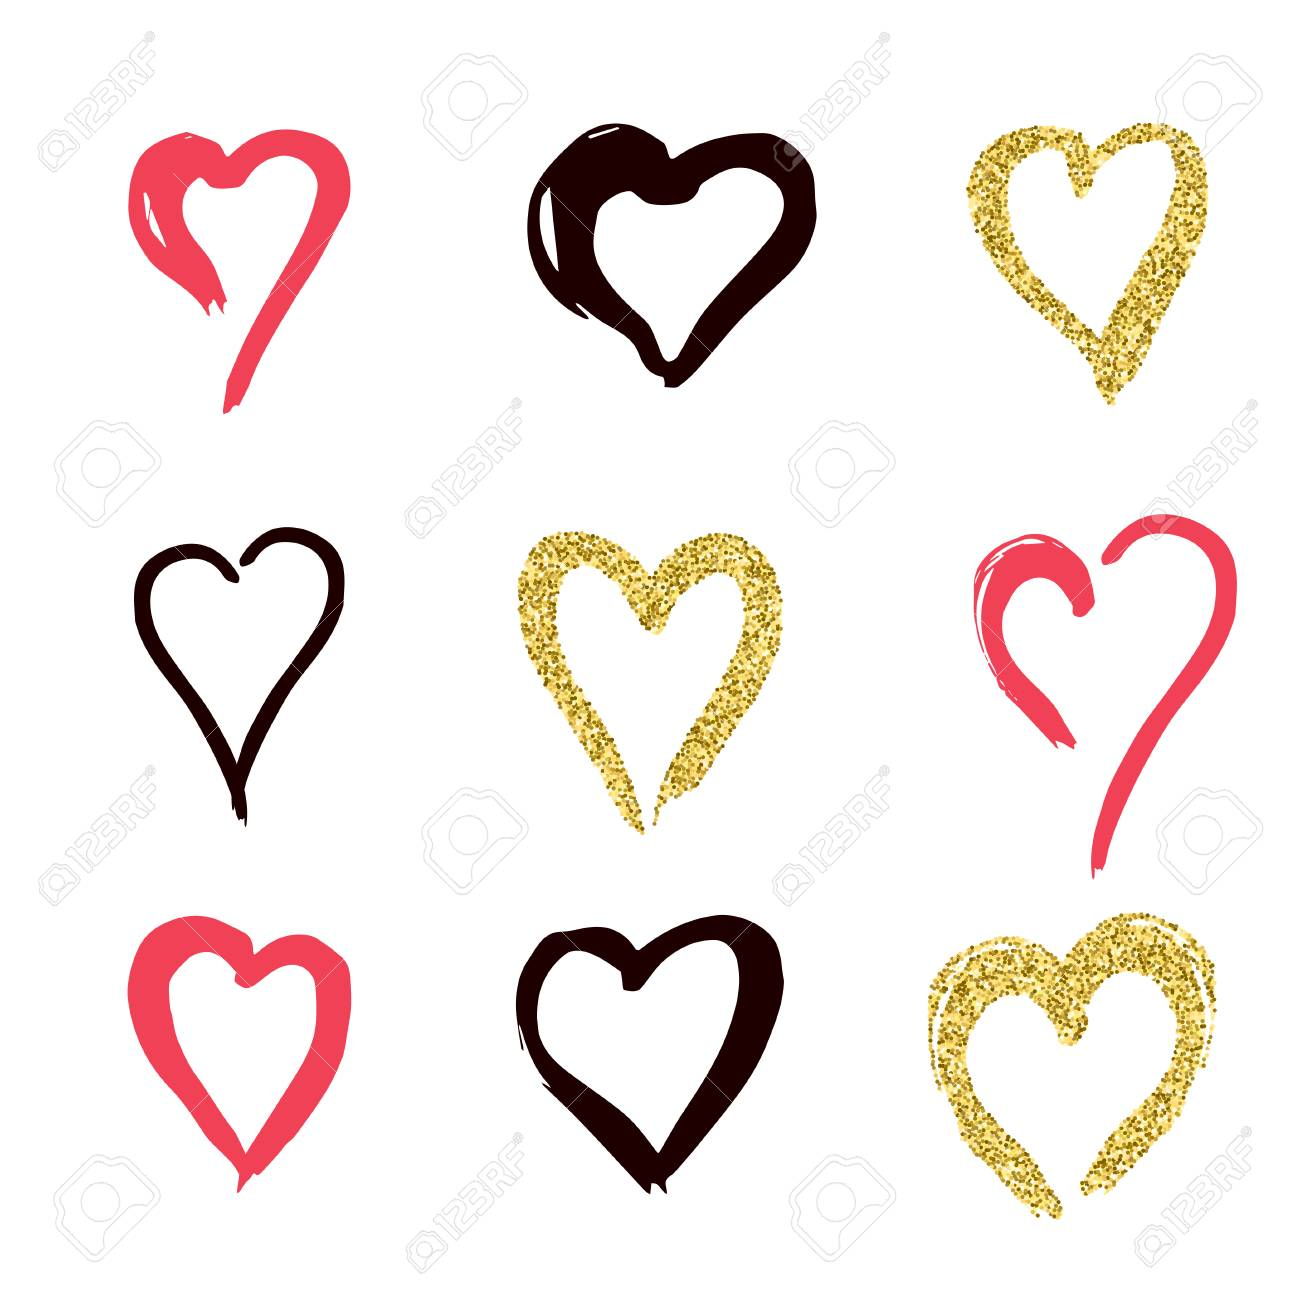 Set Of Doodle Hearts In Style The Logo The Symbol Of Love